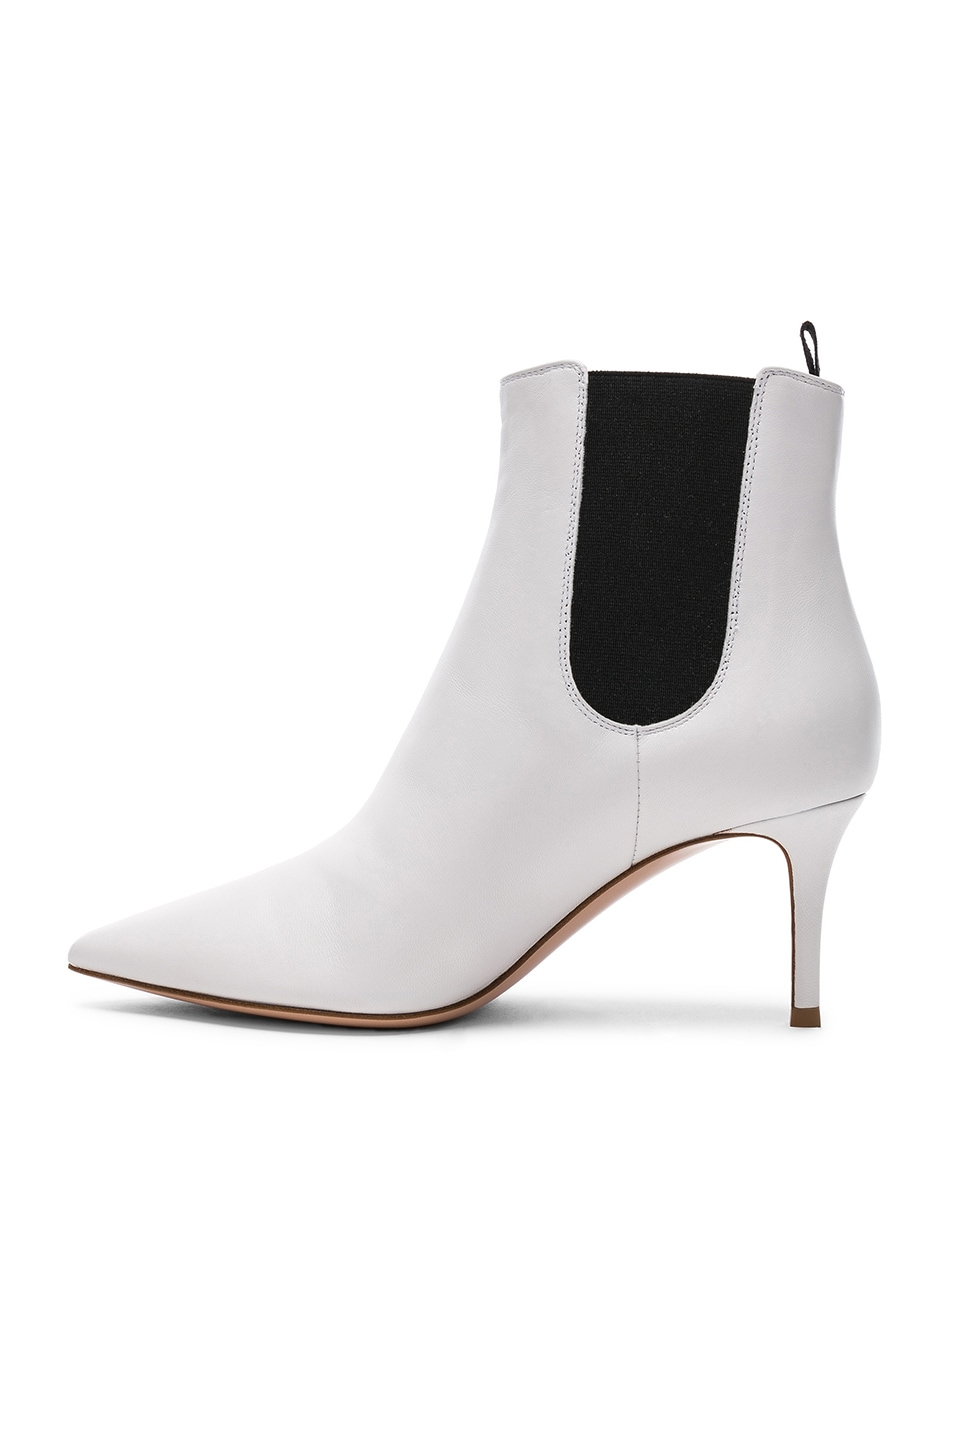 Image 5 of Gianvito Rossi for FWRD Leather Evan Stiletto Ankle Boots in White & Black